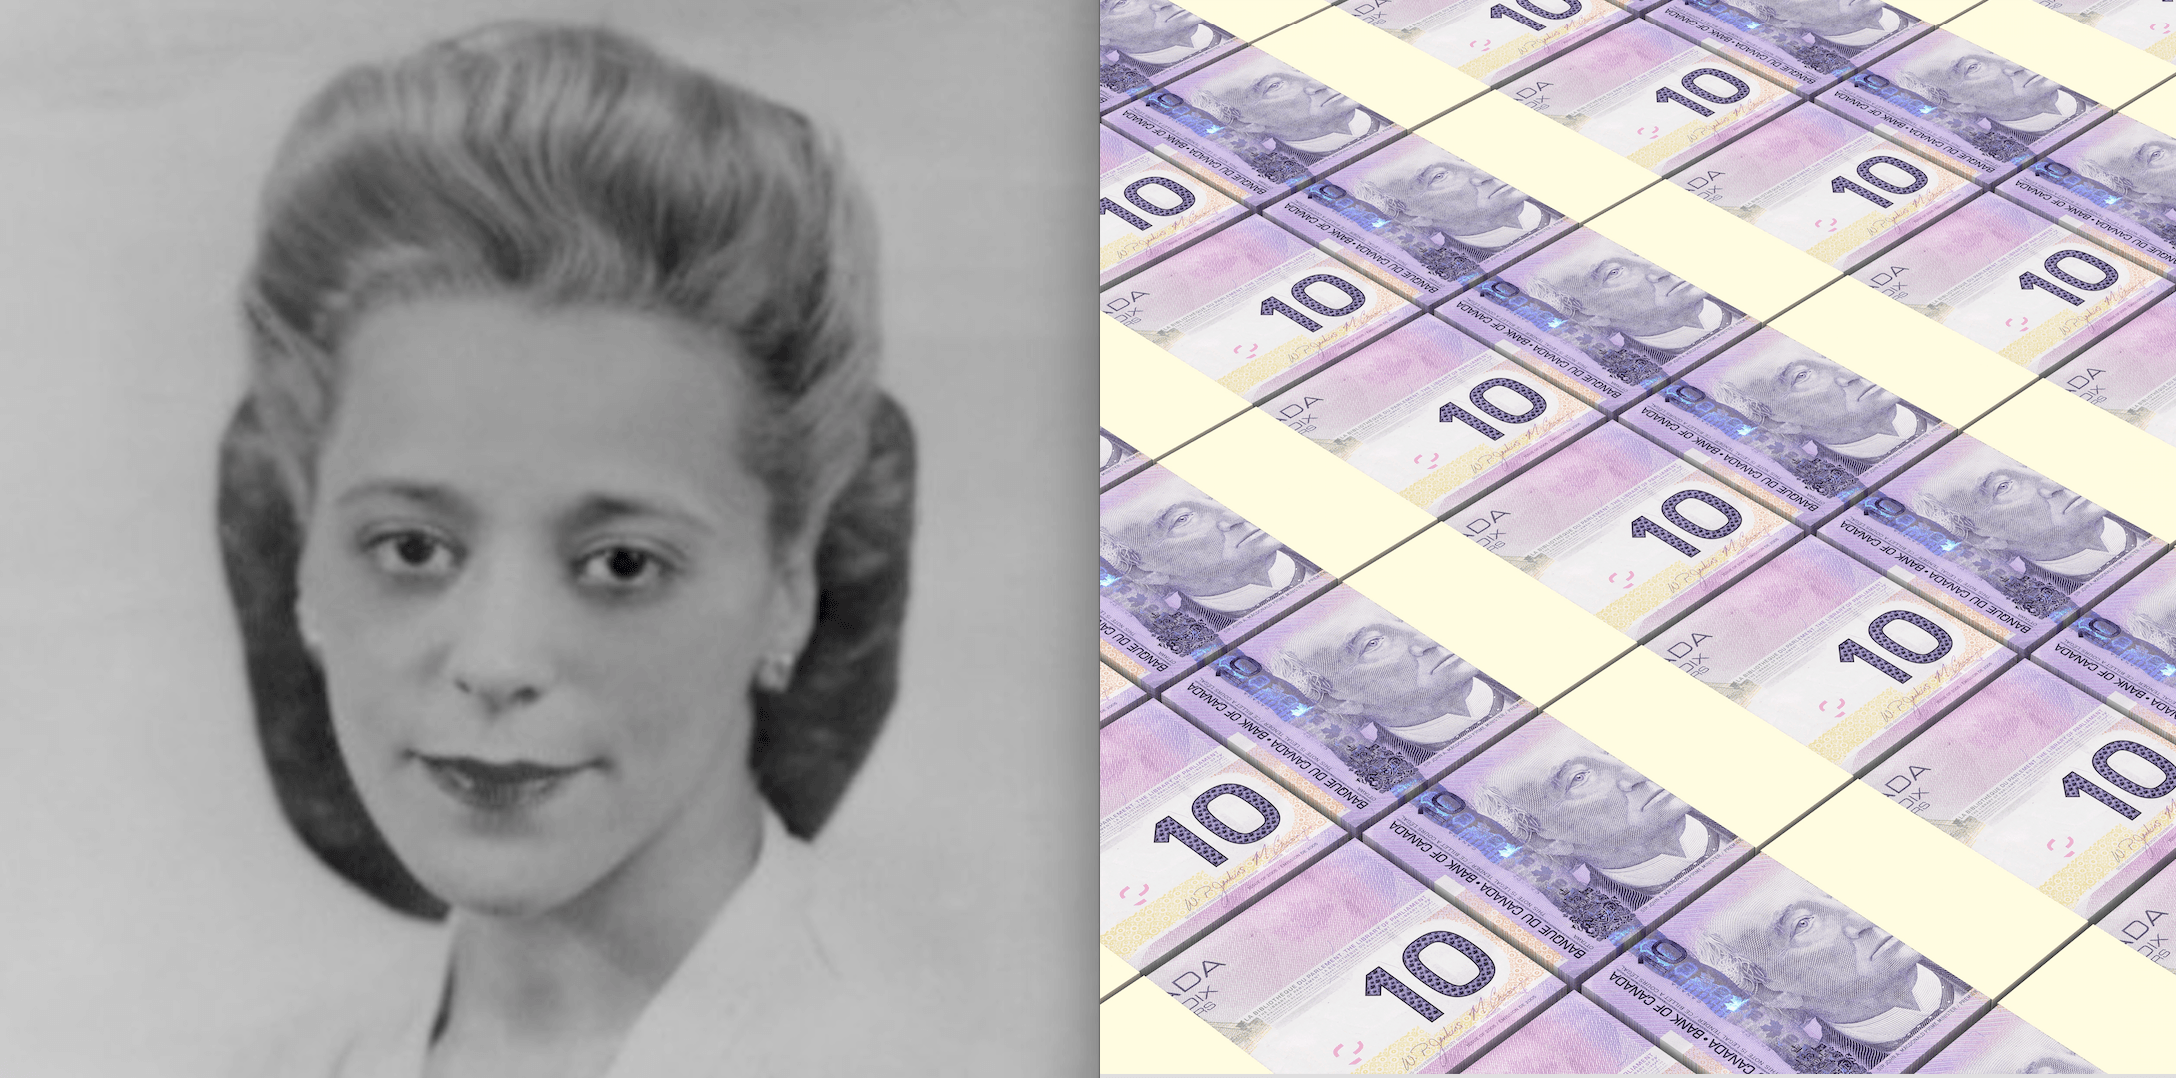 Canada's new $10 bill featuring the first Canadian woman will be unveiled next week